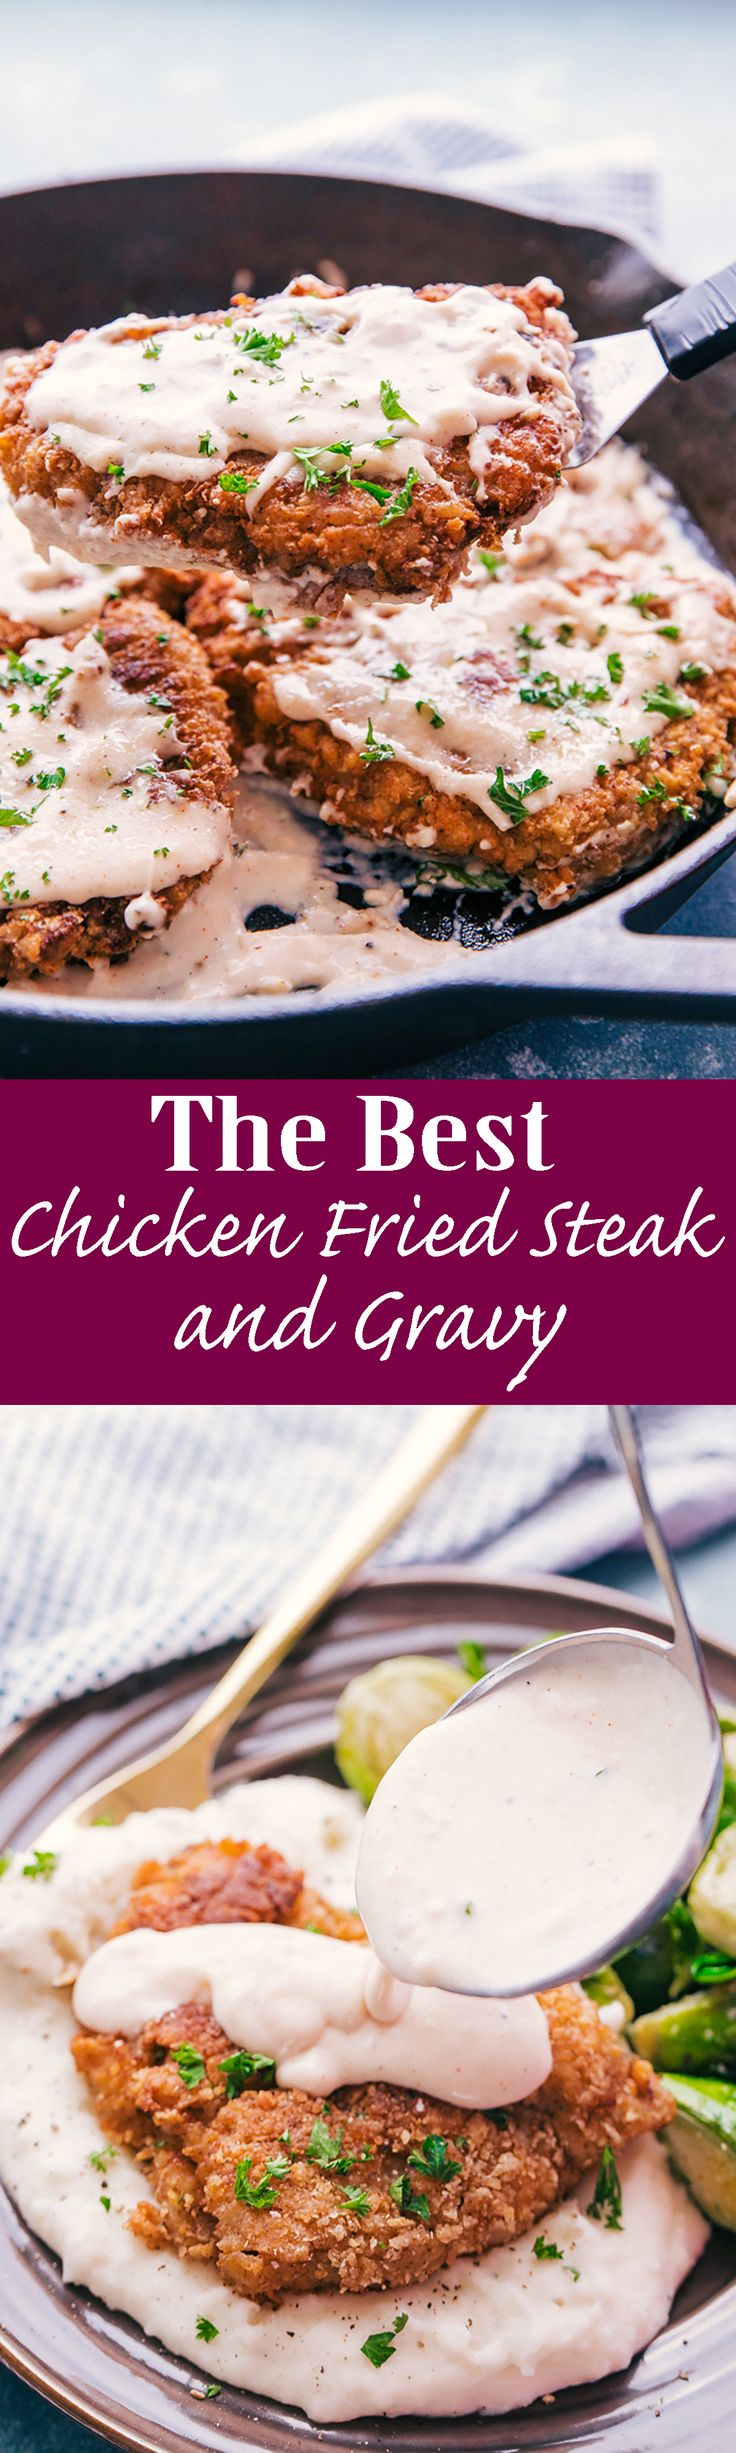 The Best Chicken Fried Steak and Gravy - The Food Cafe  This Chicken Fried Steak and Gravy is fried to a crisp perfection and doused in warm creamy gravy over mashed potatoes, this is comfort food at its best.